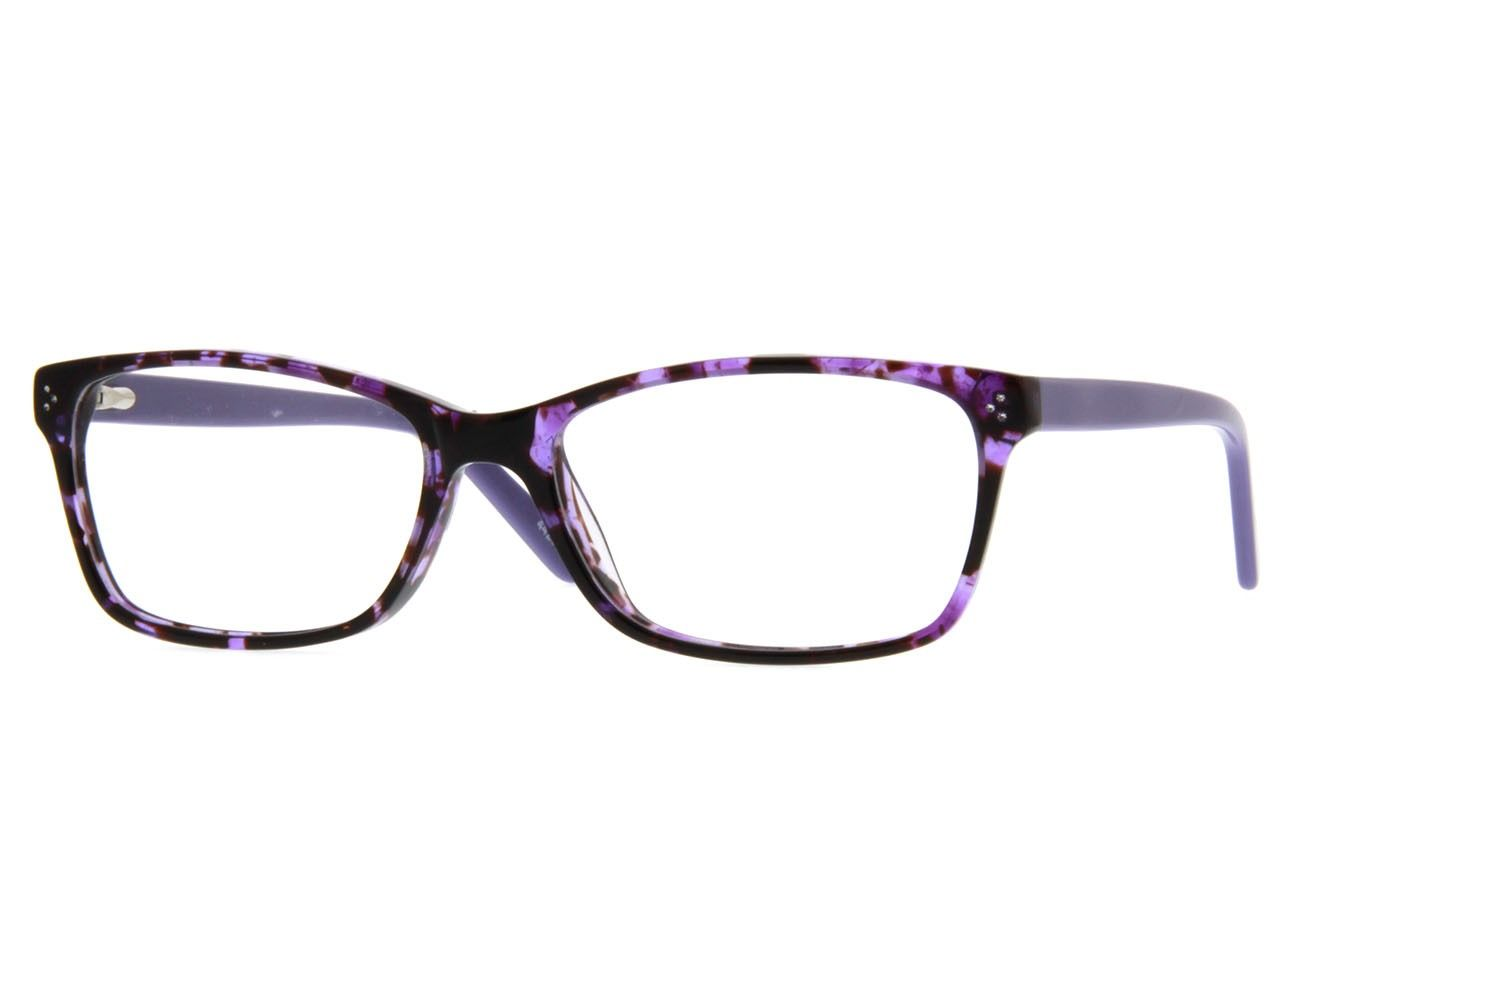 Purple Thin Acetate Eyeglasses #4420317 | Zenni Optical Eyeglasses ...